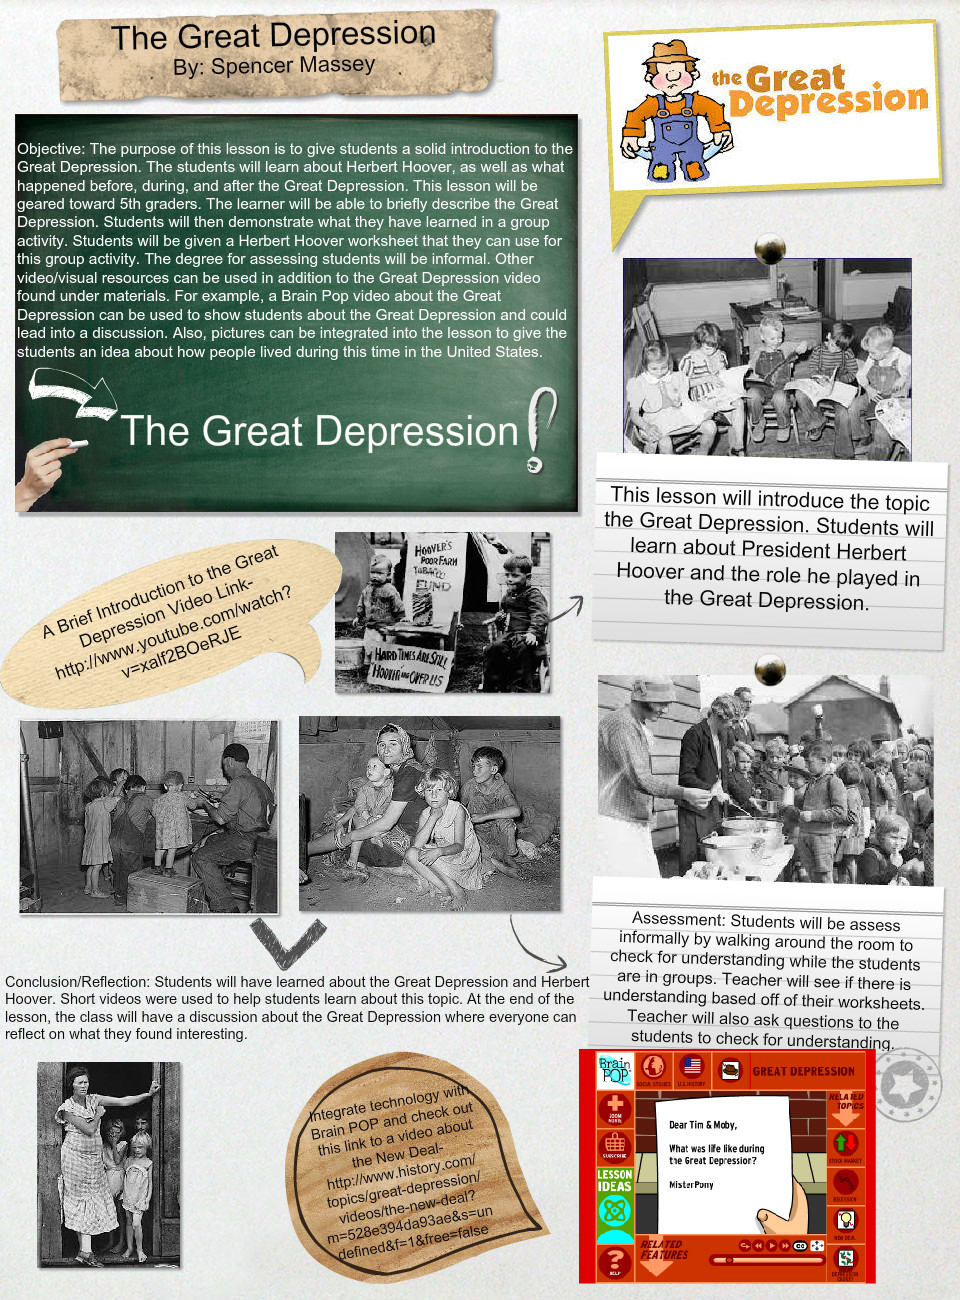 010 Conclusion Of The Great Depression Essay Example Amazing Full